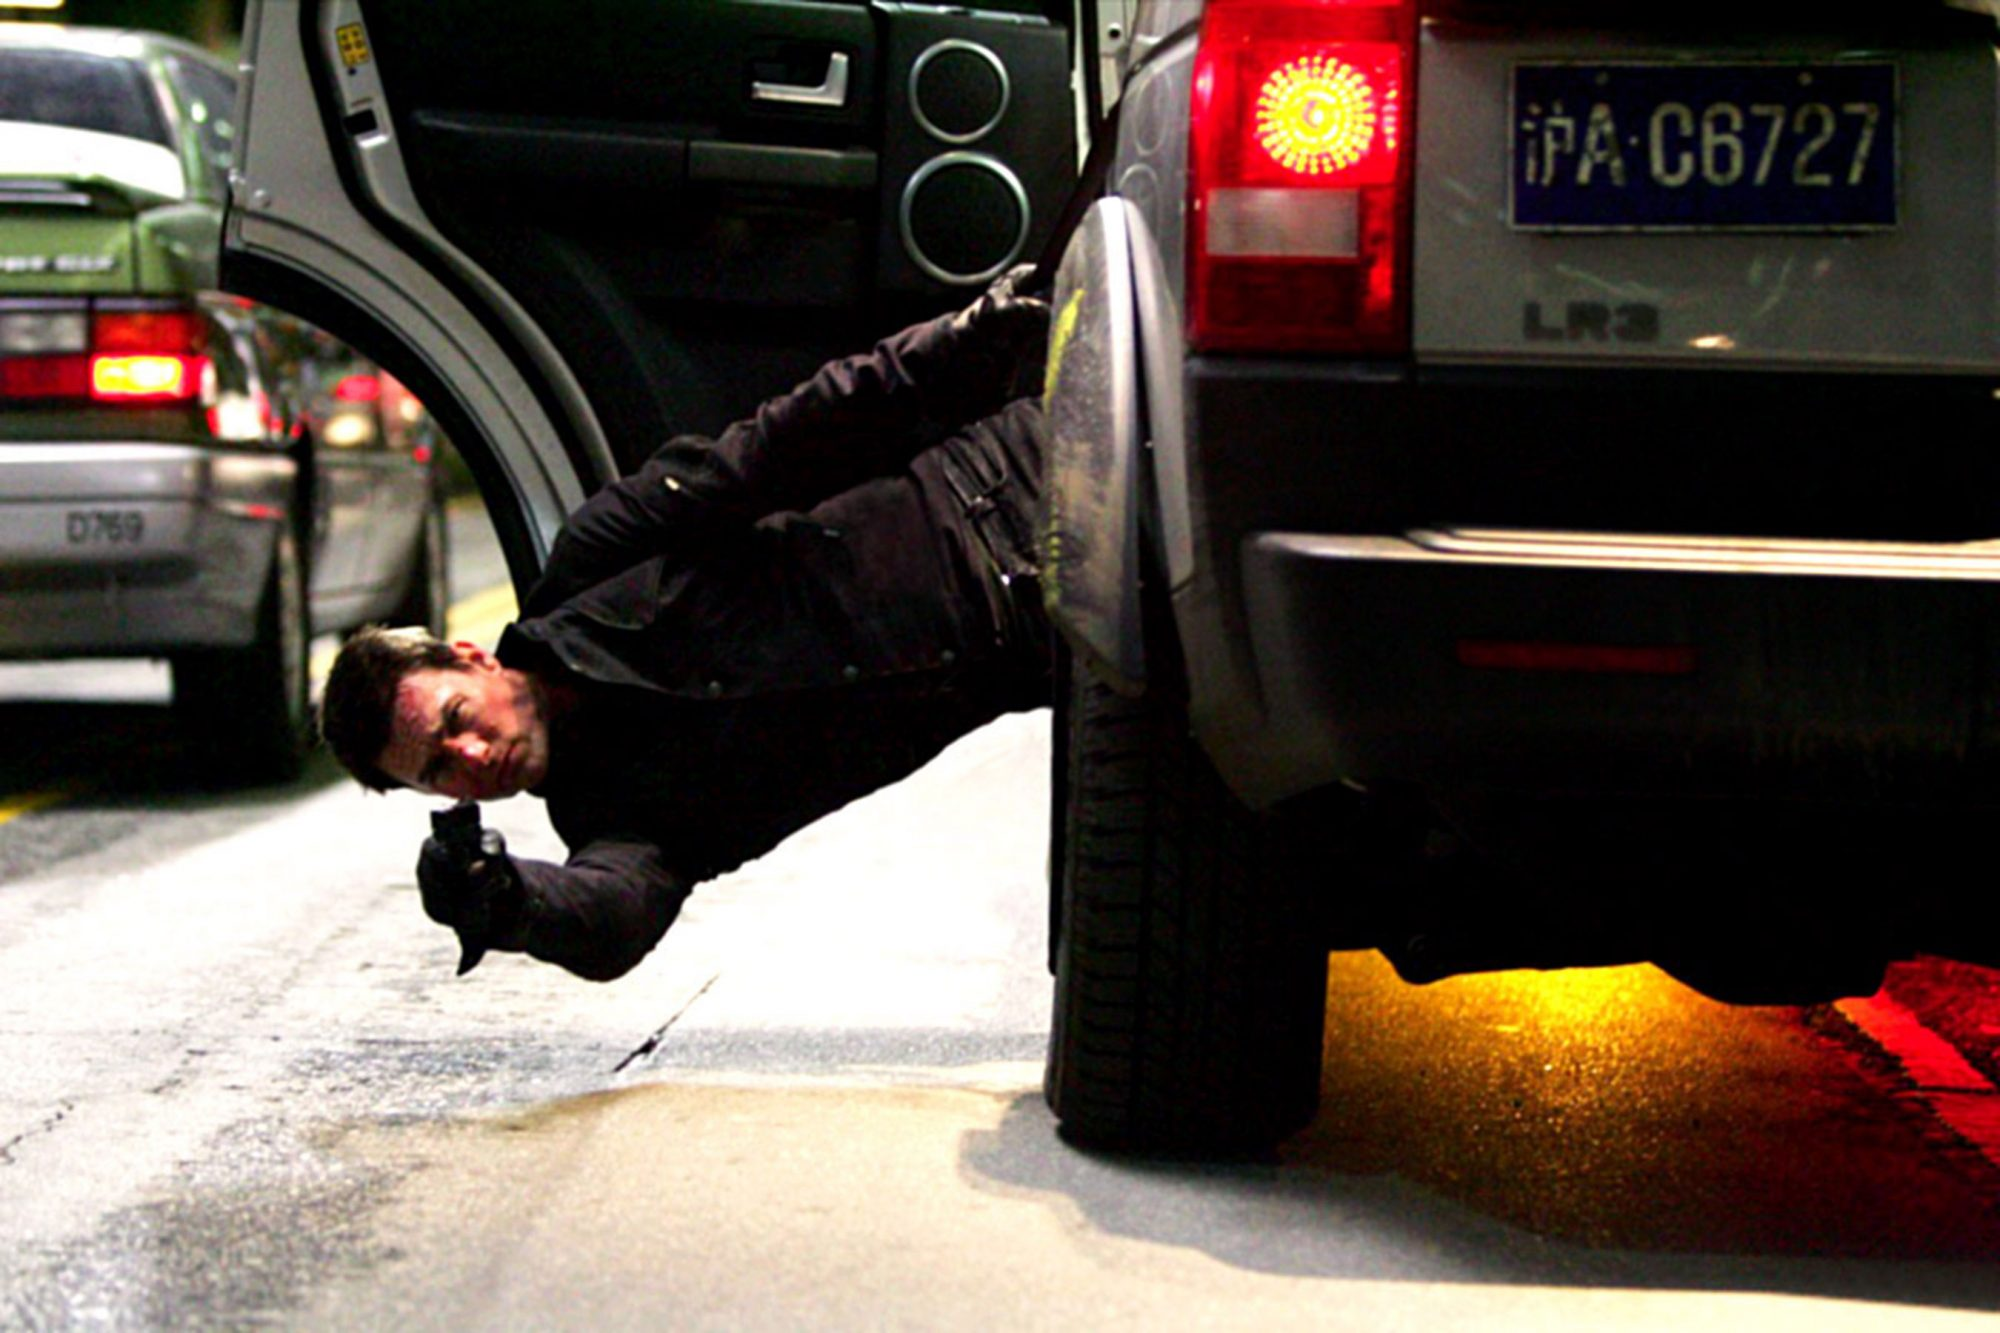 MISSION: IMPOSSIBLE III, Tom Cruise, 2006, (c) Paramount/courtesy Everett Collection